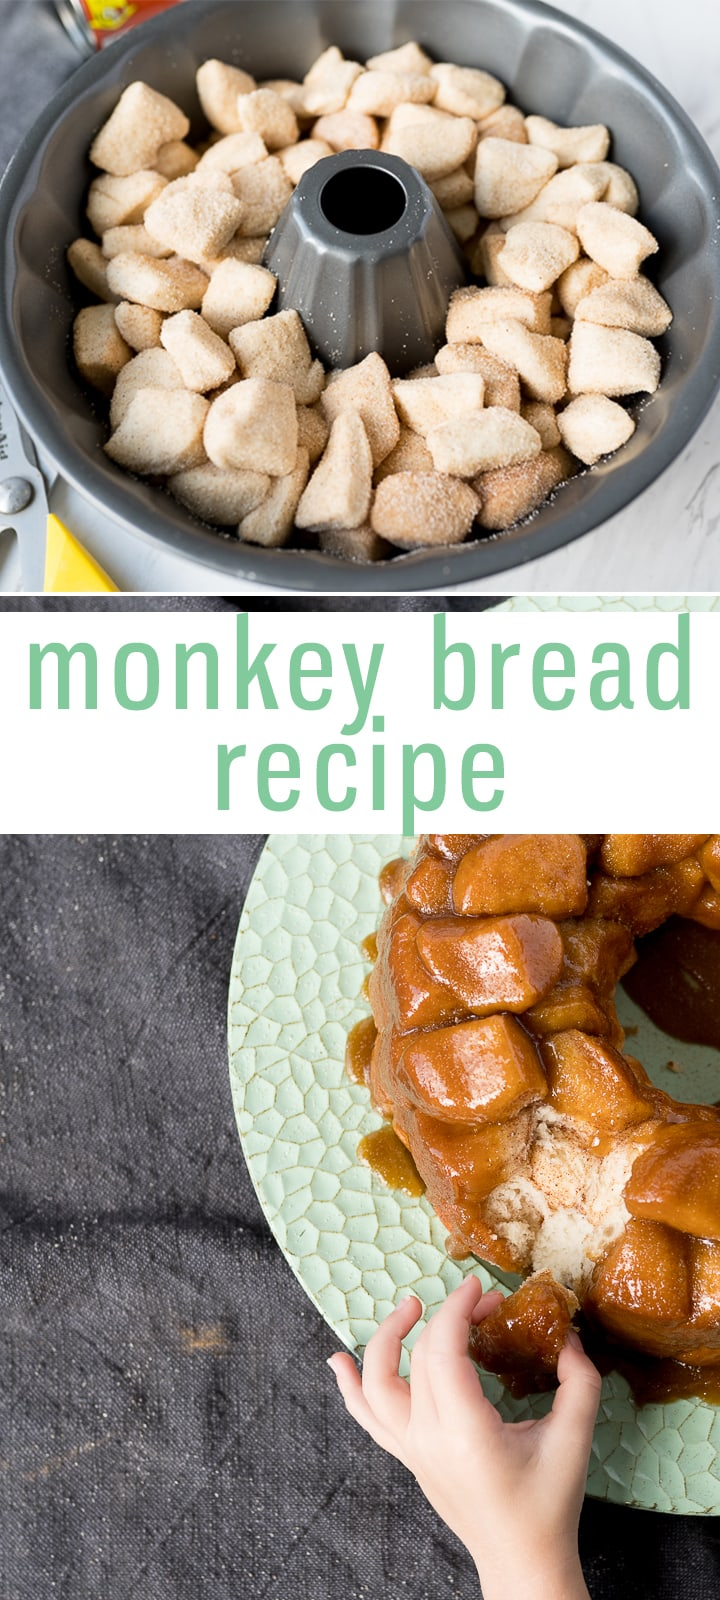 pin image for monkey bread